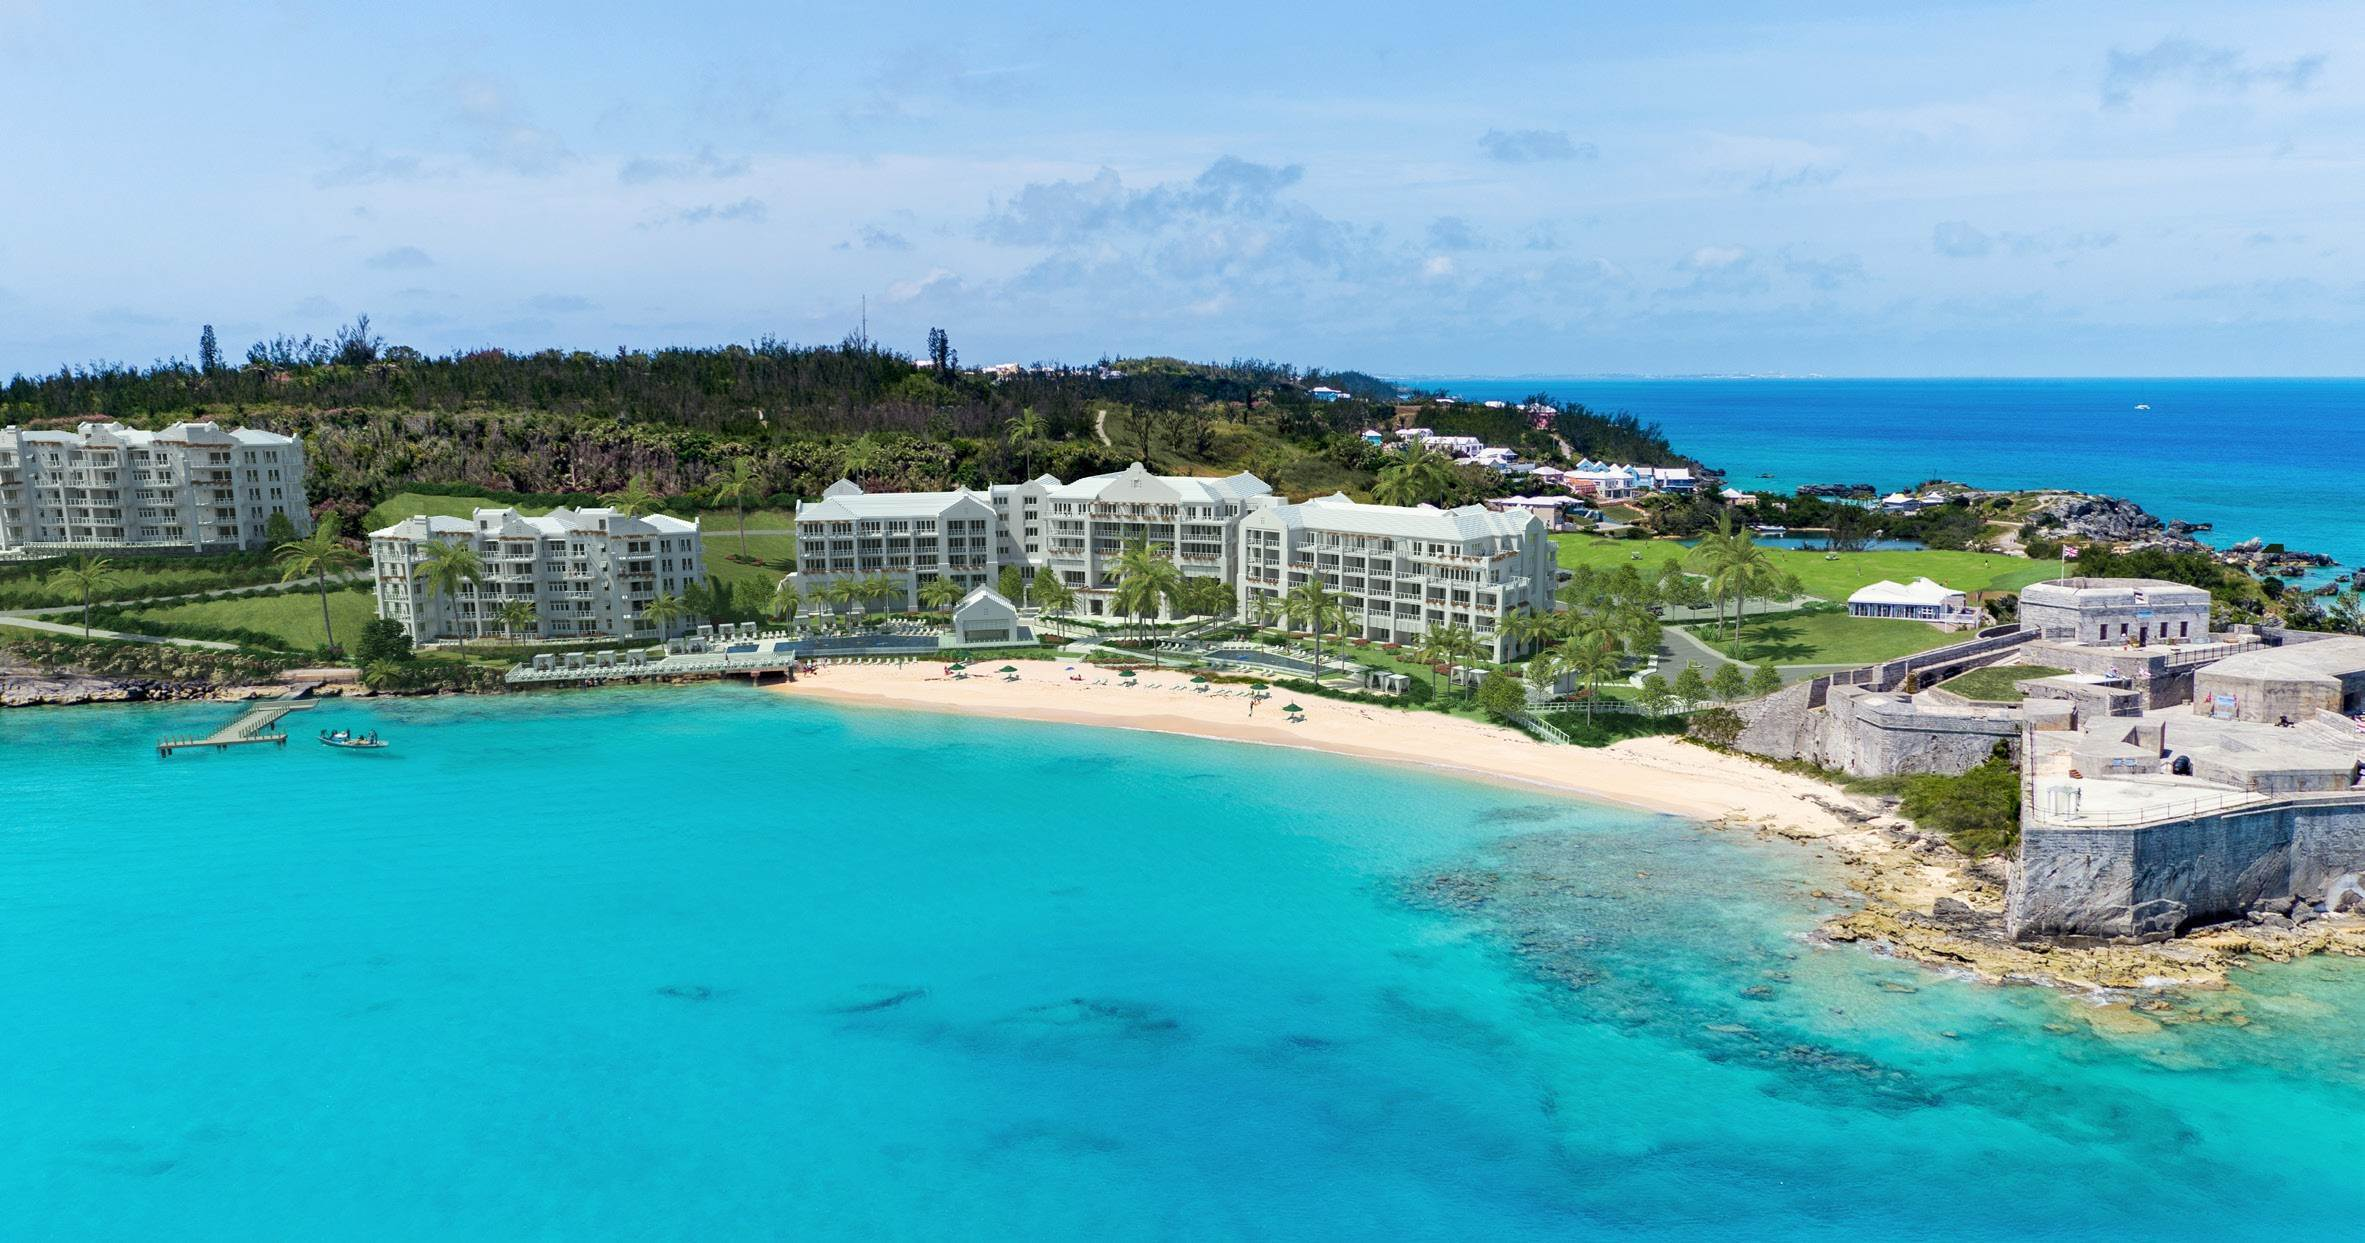 3. Condo / Townhouse / Flat for Sale at St. Regis Bermuda Residences - Gates Bay 3B St. Catherine's Beach St Georges Parish, GE03 Bermuda